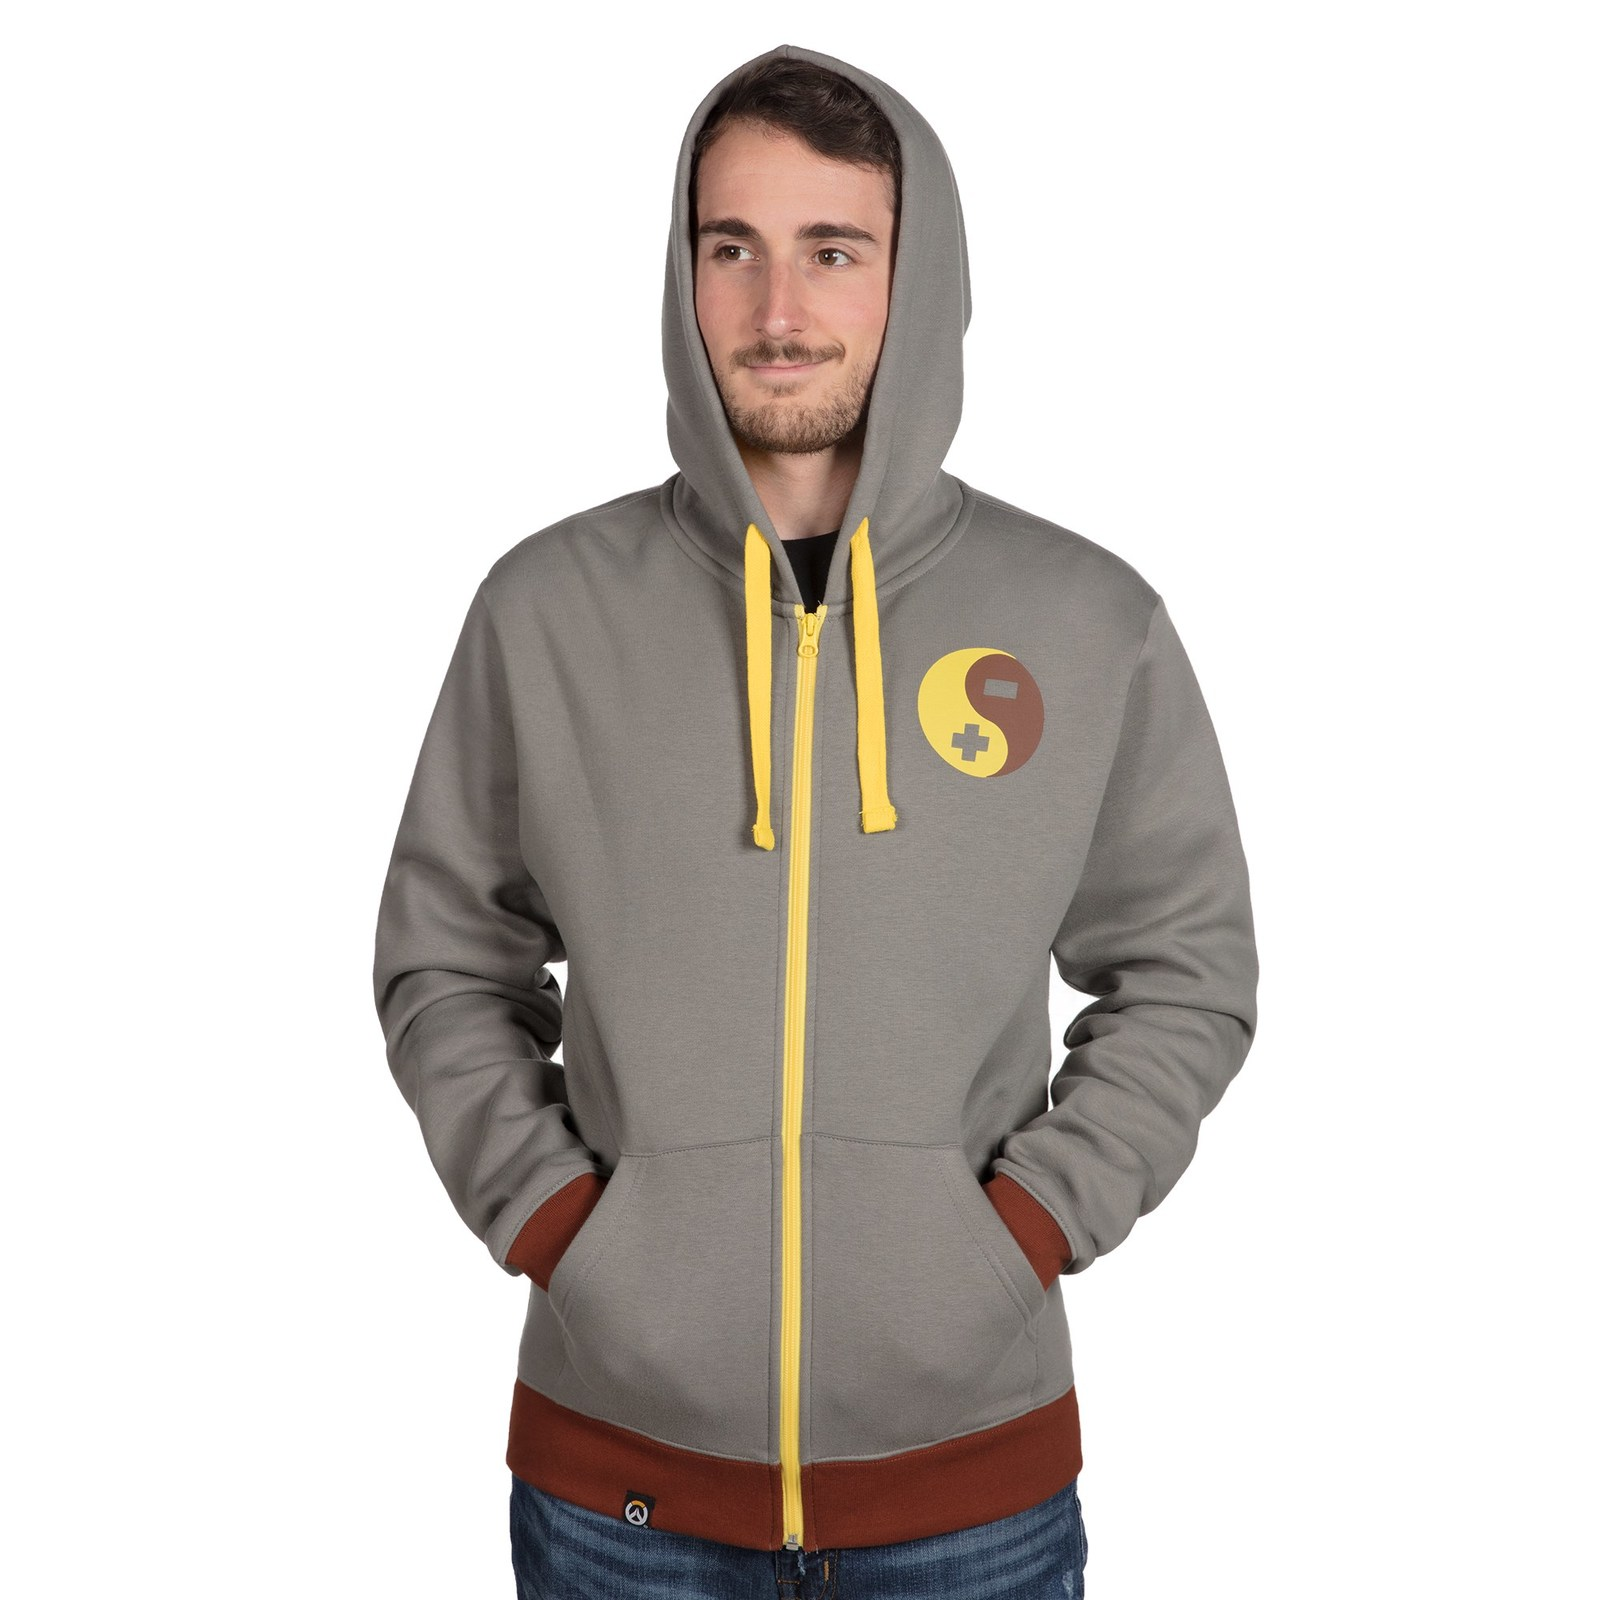 Overwatch Ultimate Zenyatta Zip-Up Hoodie (XL) image